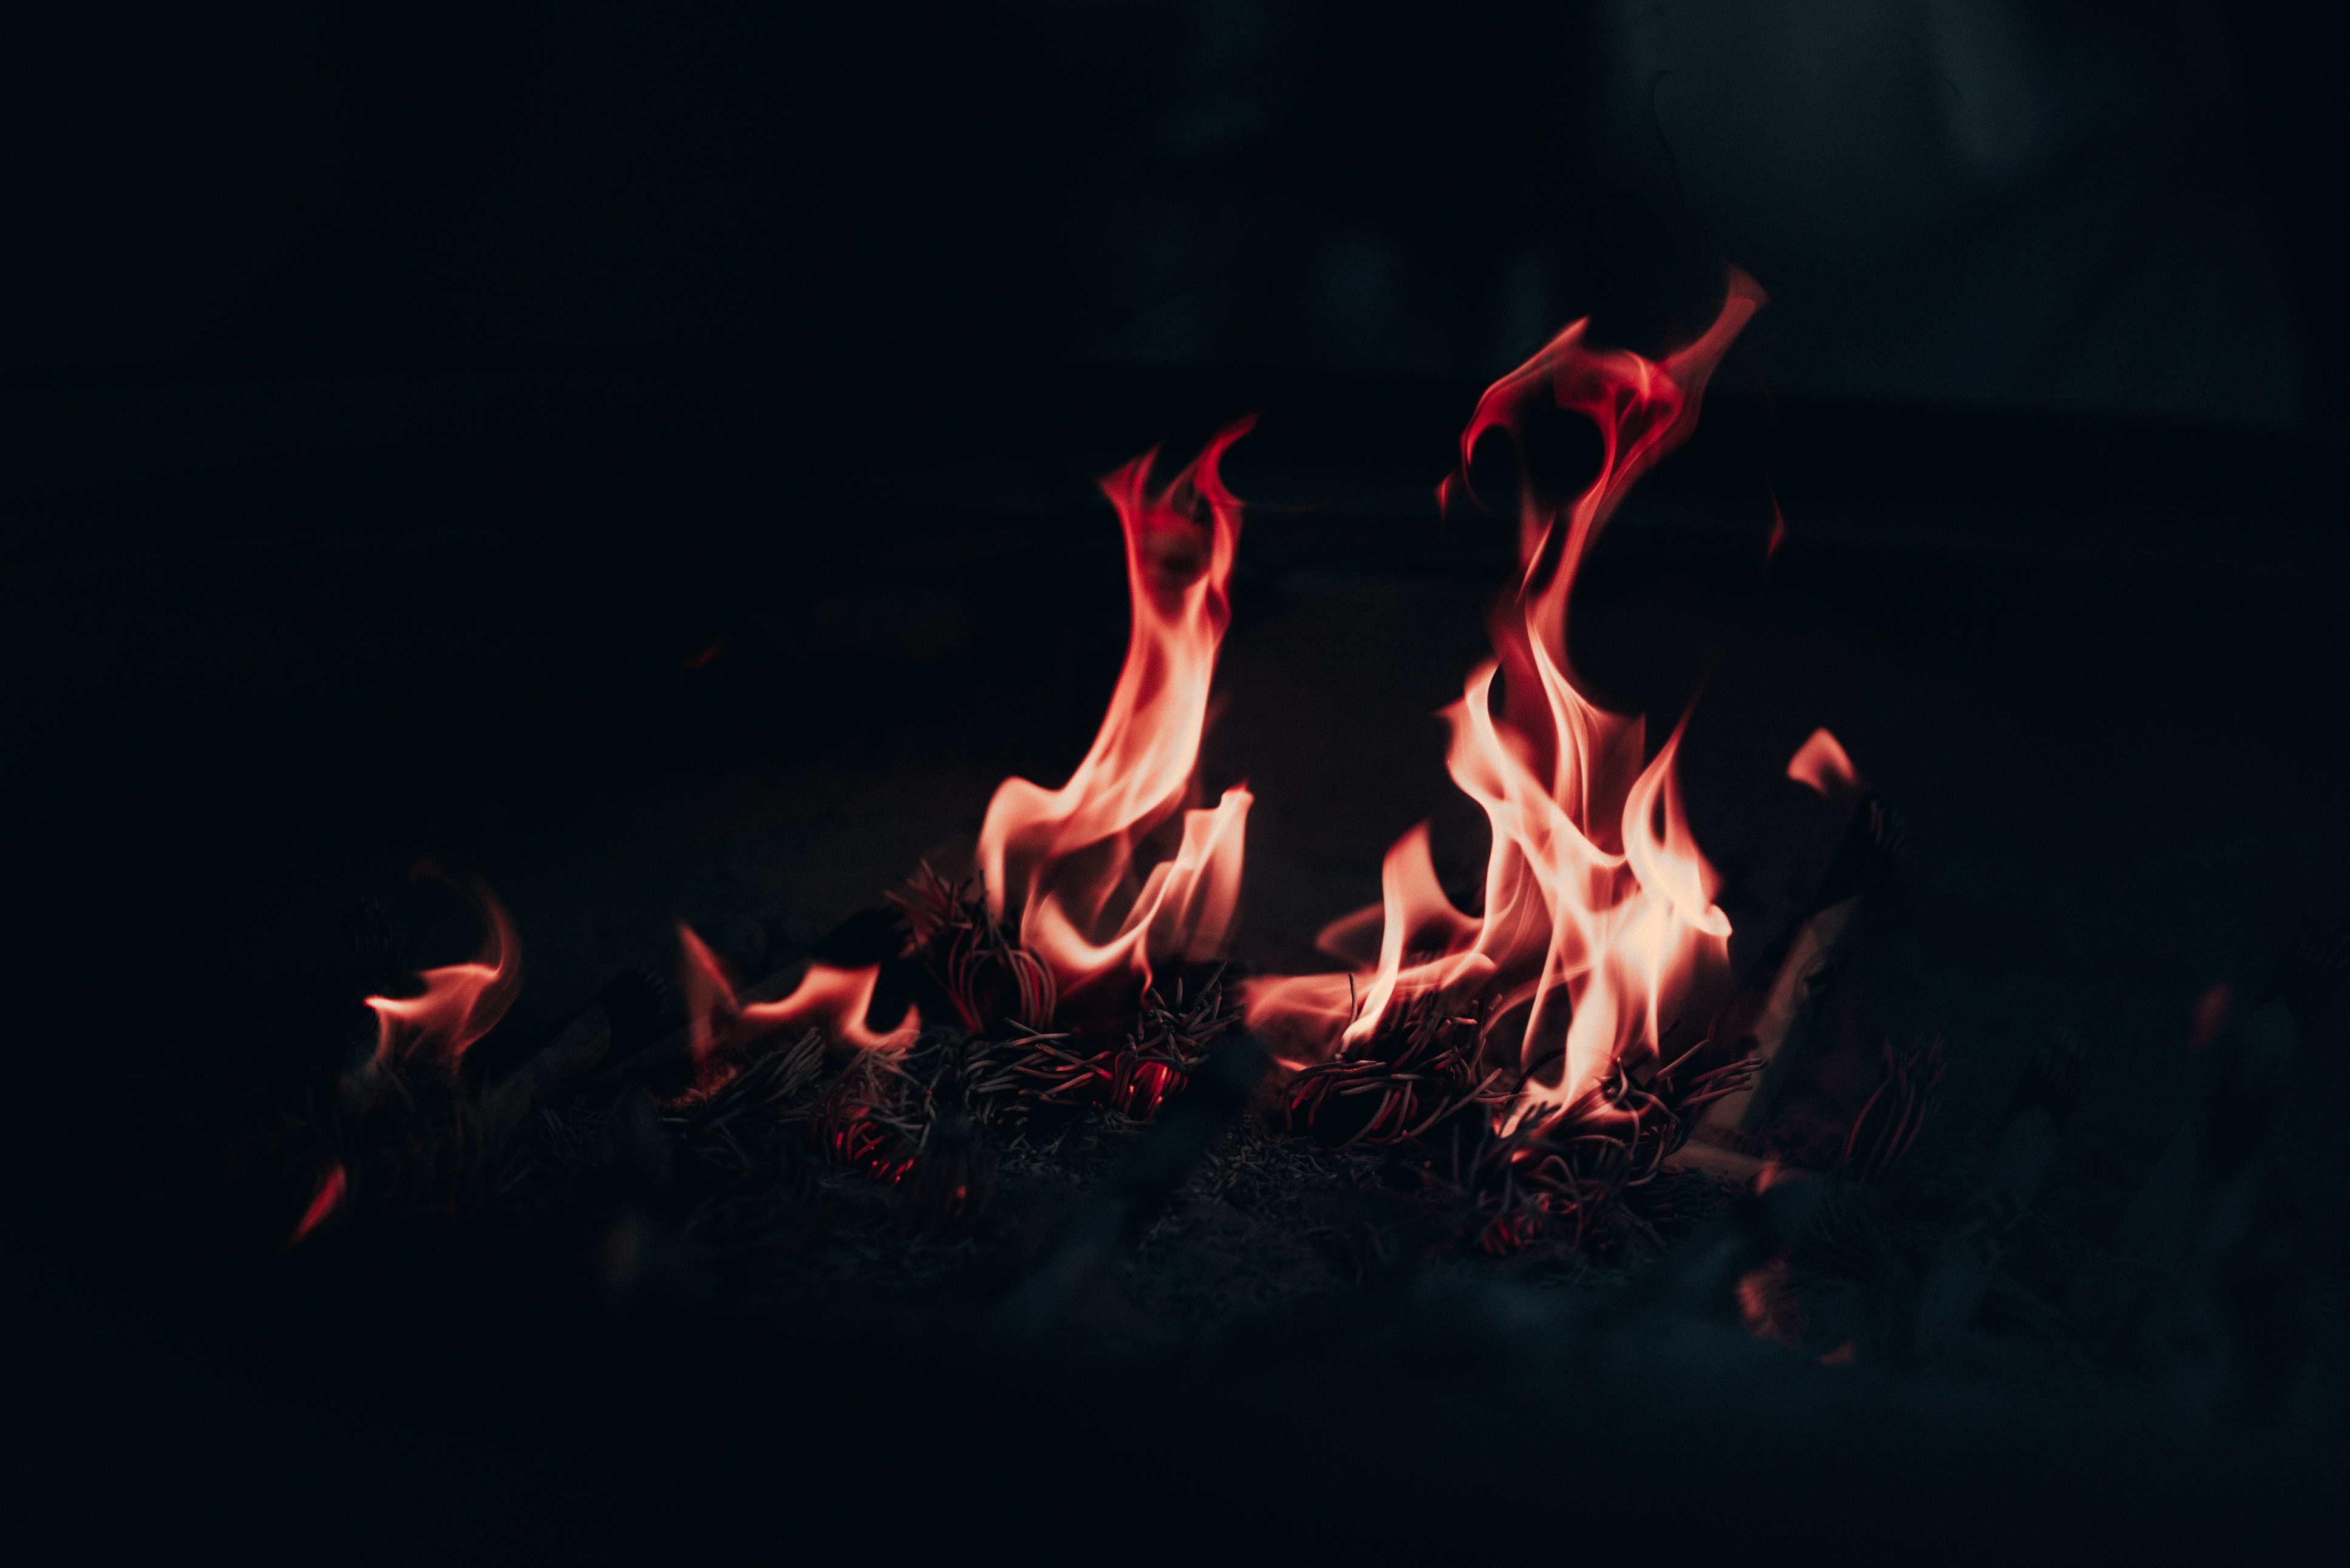 145523 Screensavers and Wallpapers Bonfire for phone. Download Fire, Bonfire, Night, Dark, Flame, To Burn, Burn pictures for free